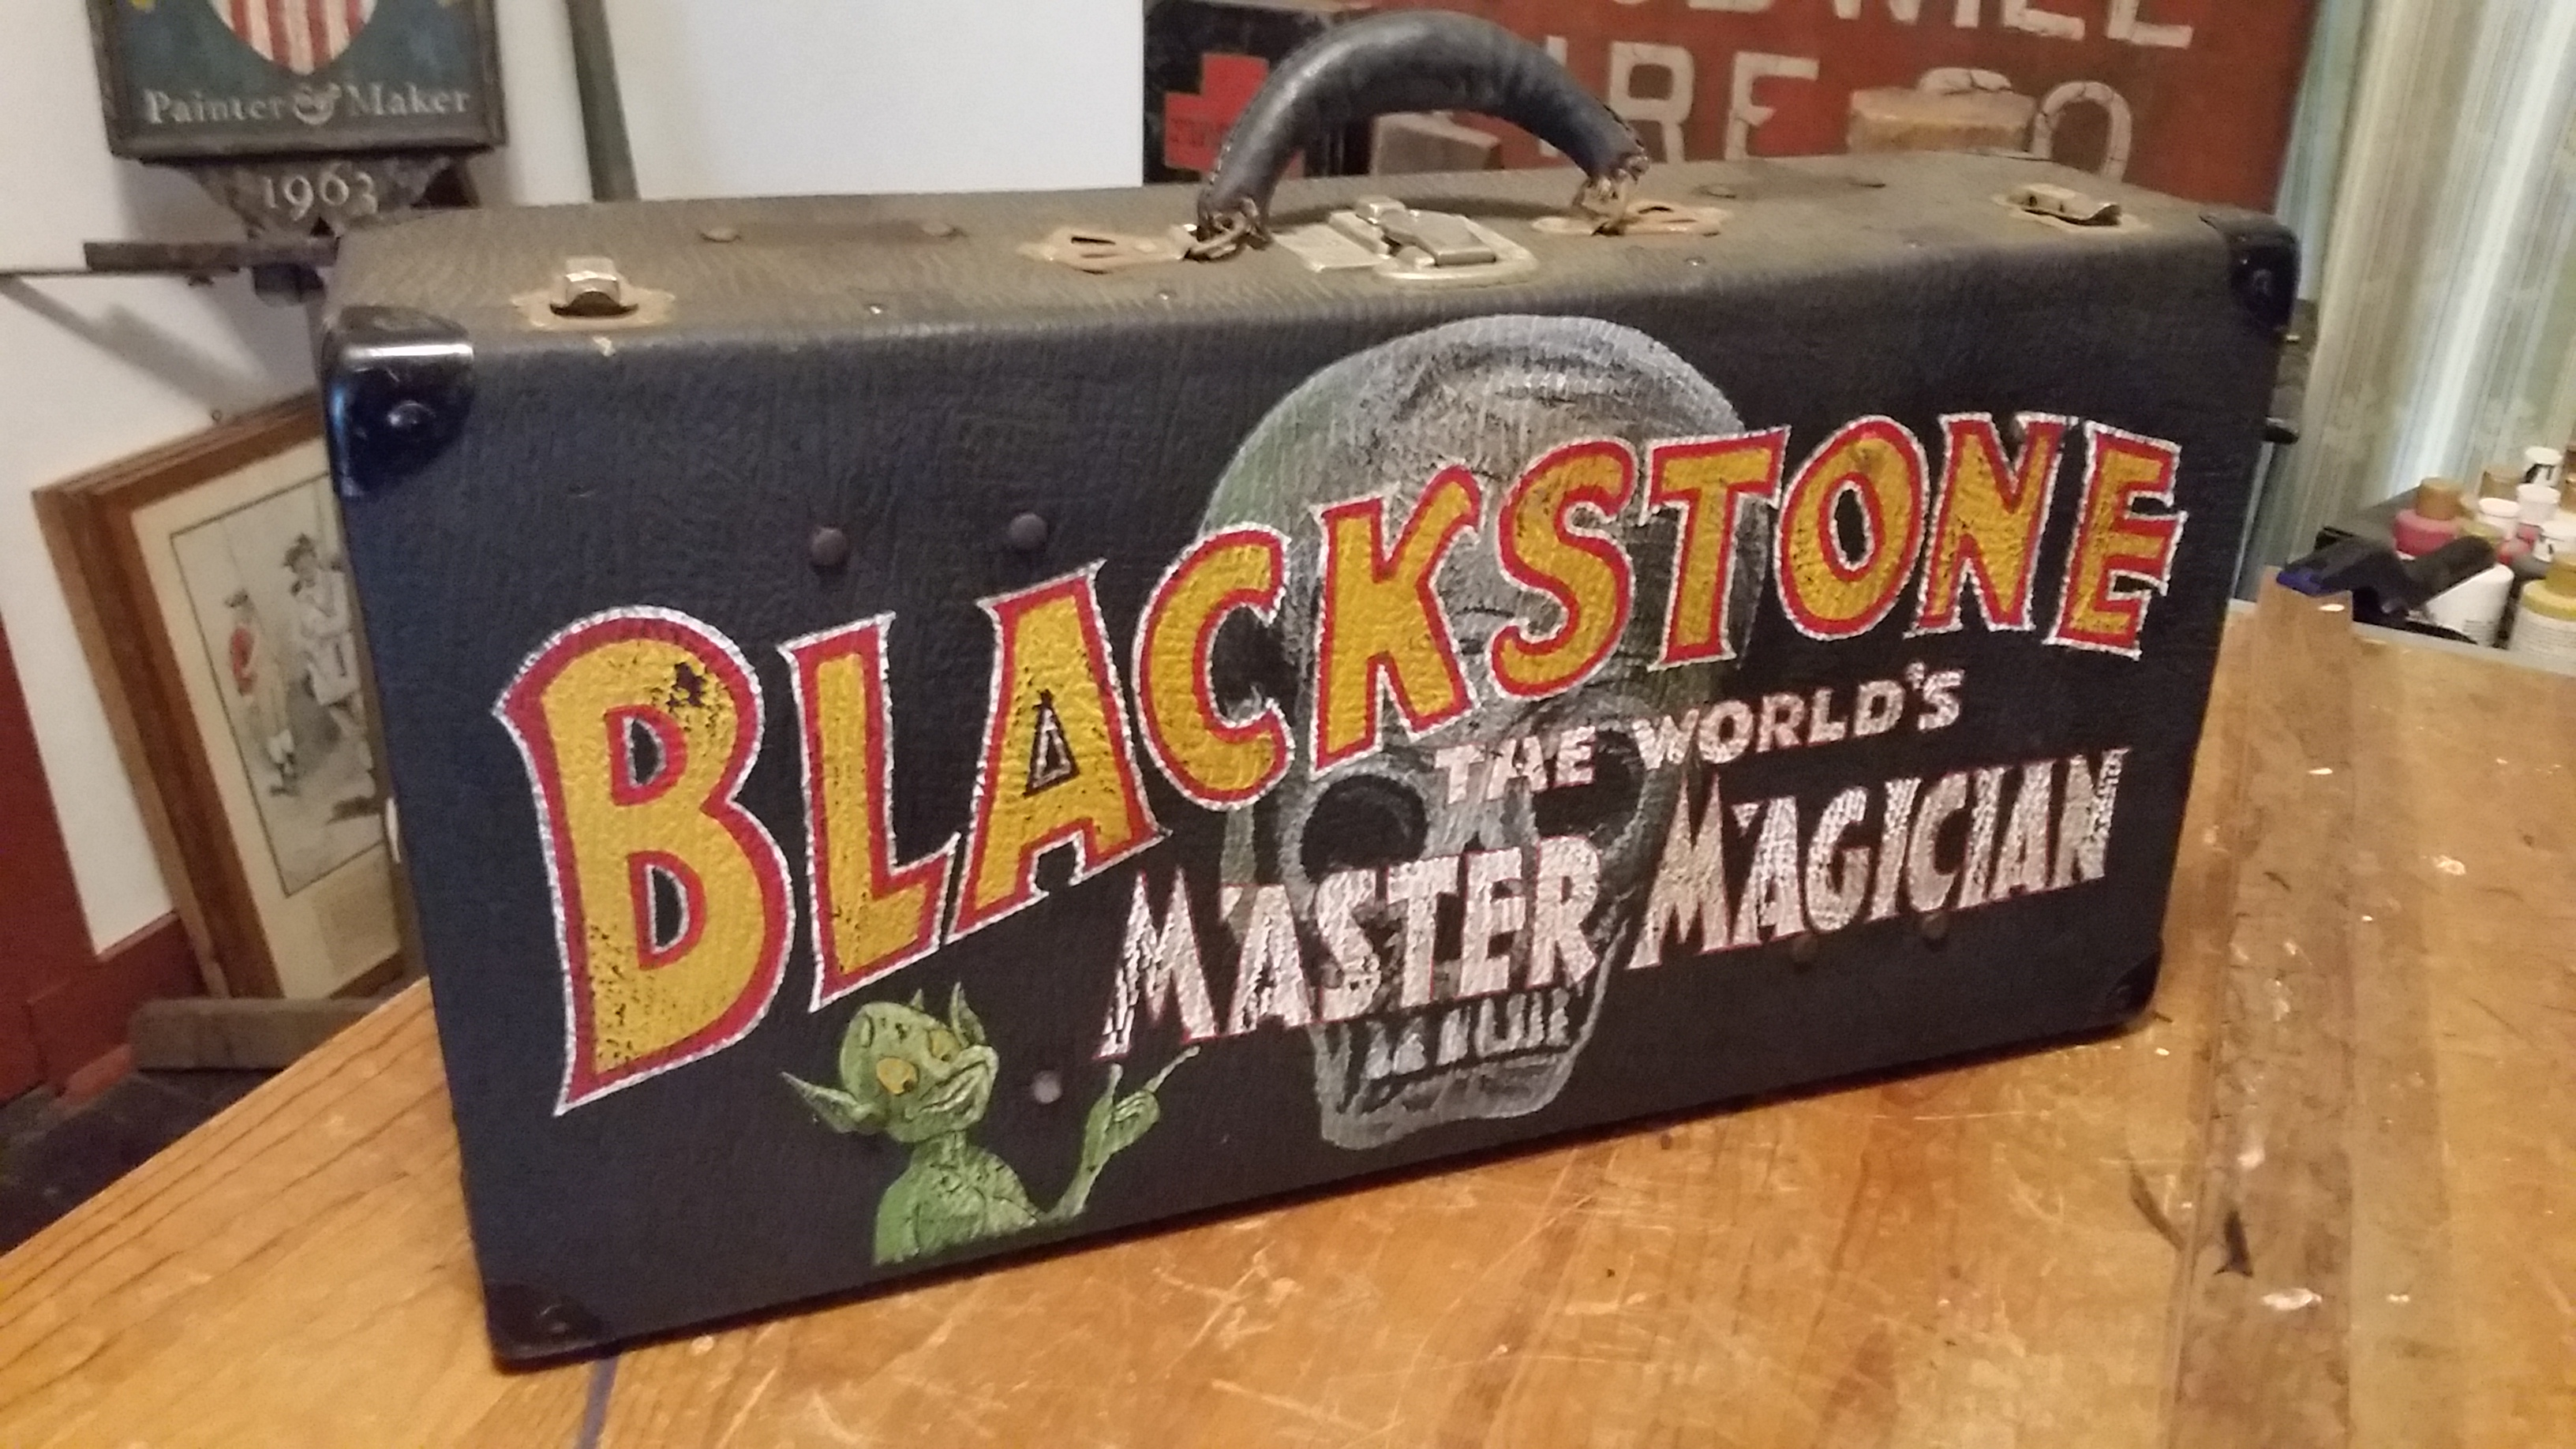 Blackstone Magician Case